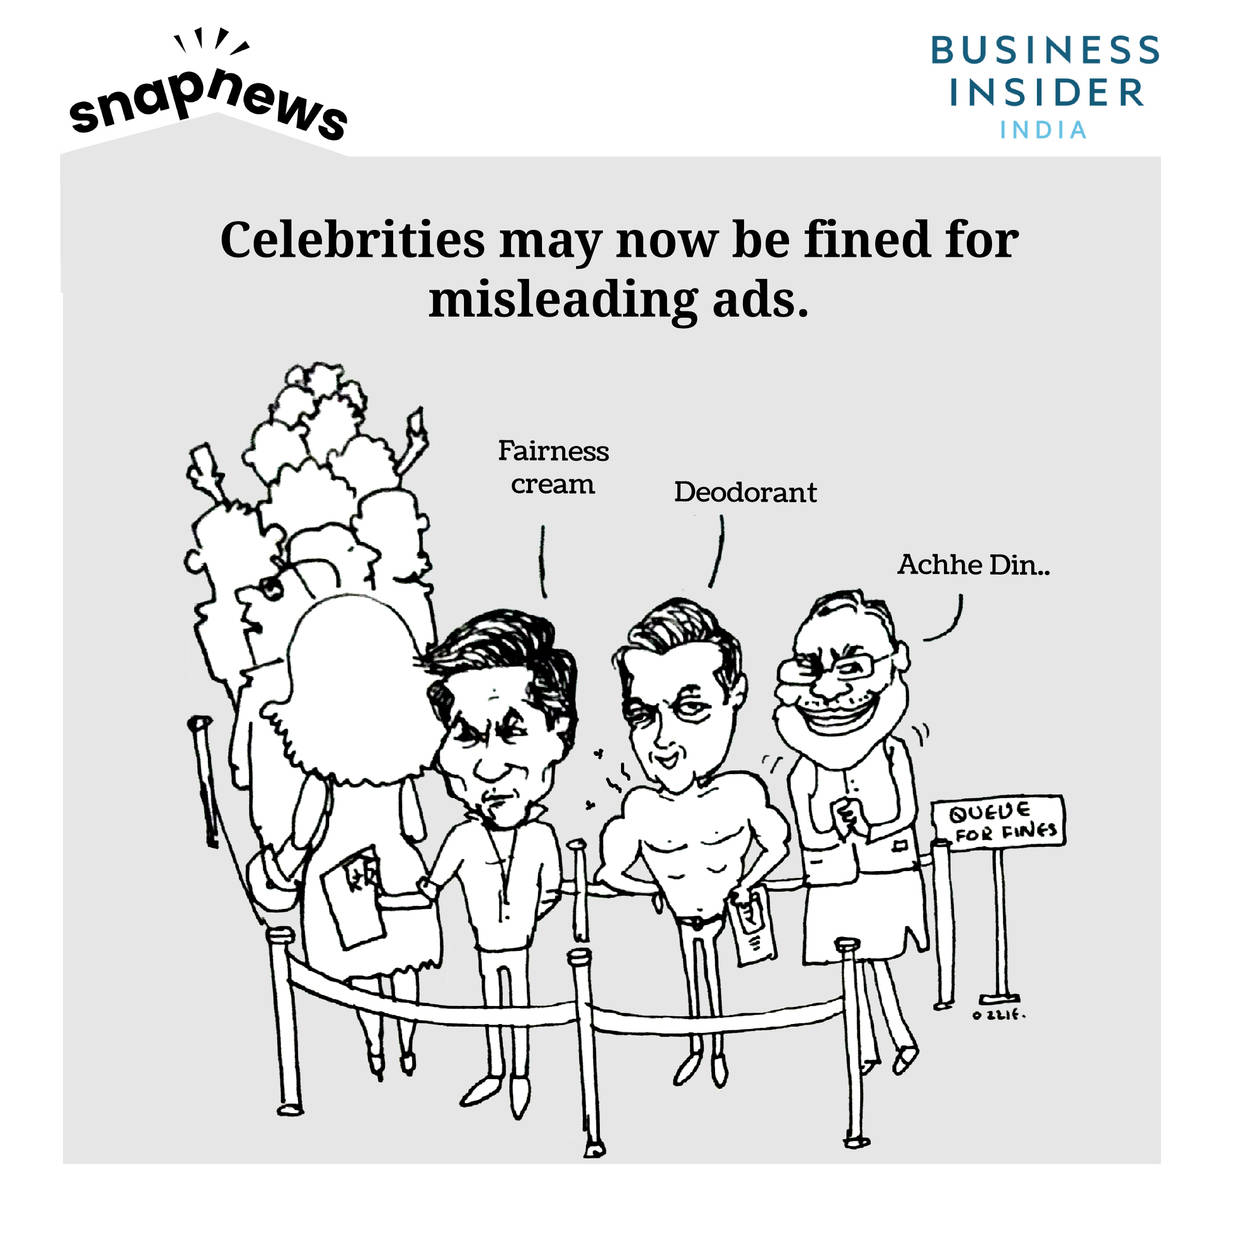 Indian government will fine celebrities for fake and misleading ads